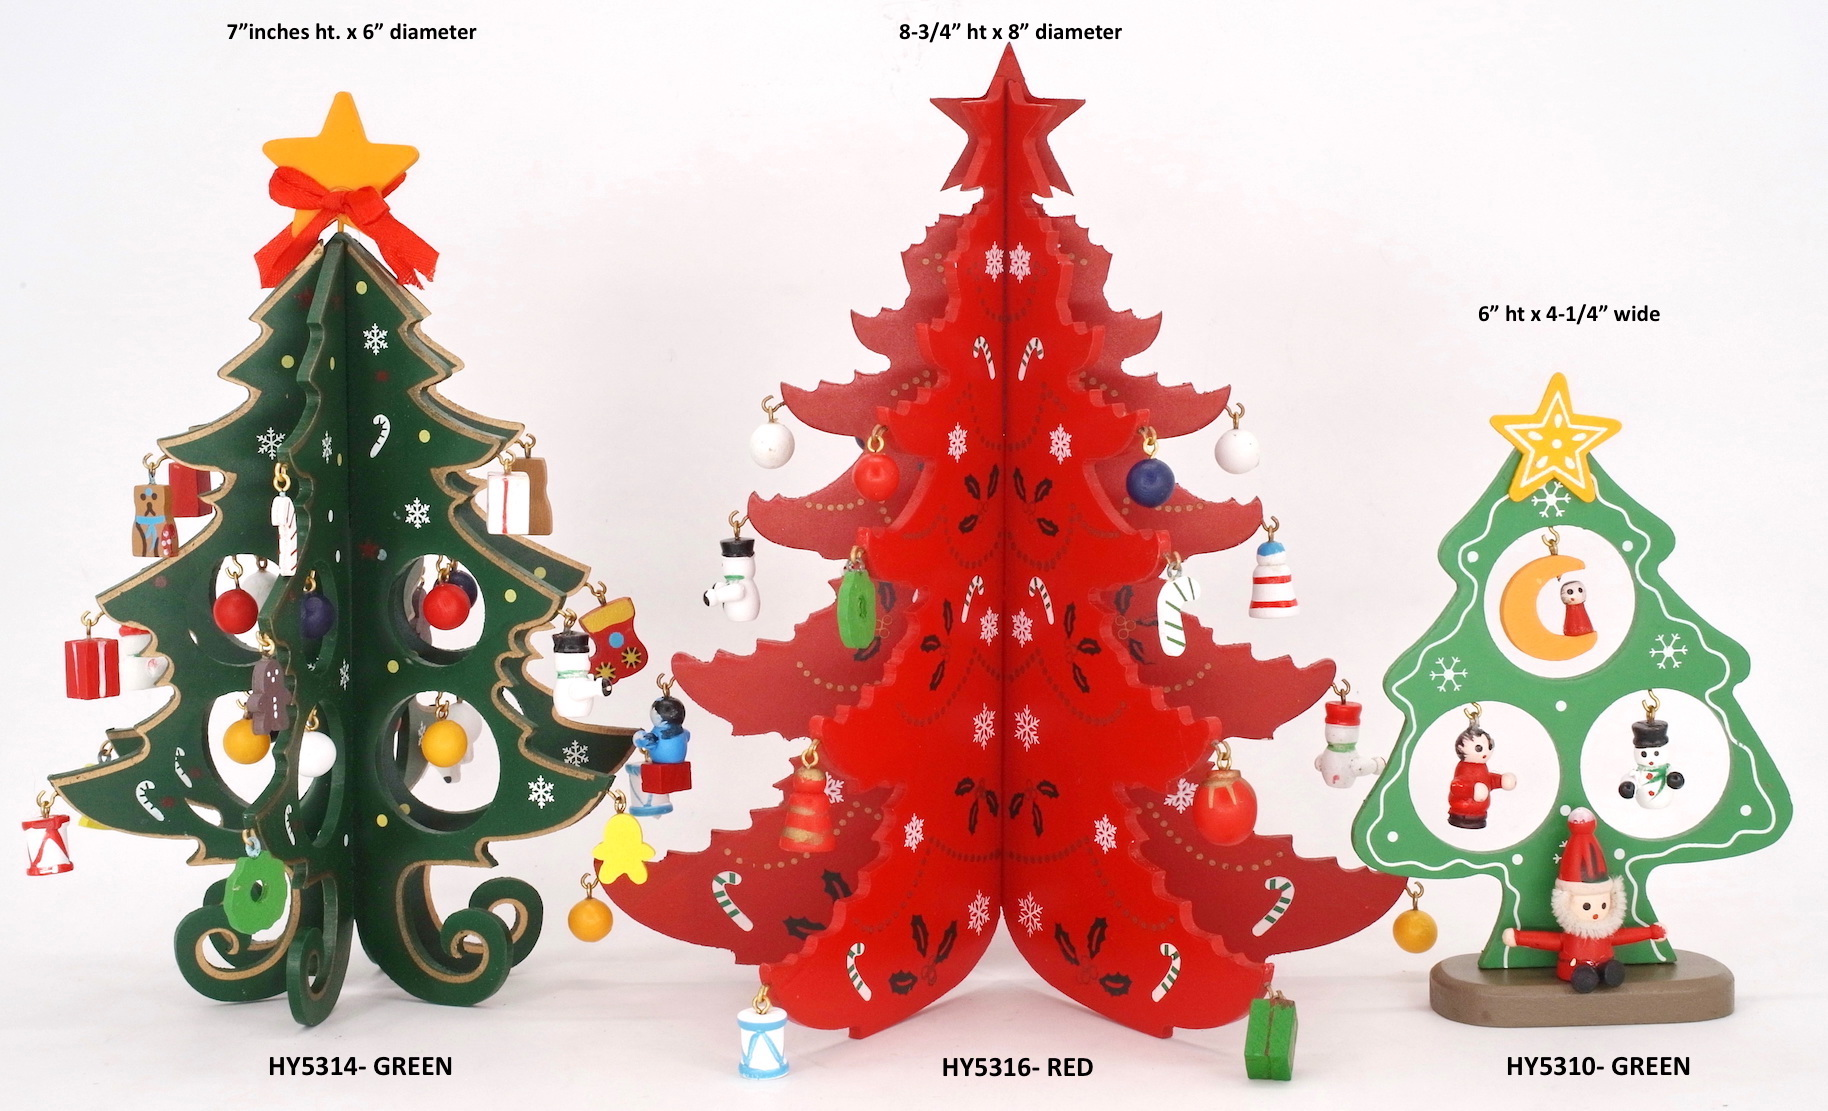 Christmas Tree Small Wooden Tabletop 6 Inch Christmas Tree Cutout Decor With Wooden Ornaments Lazada Ph